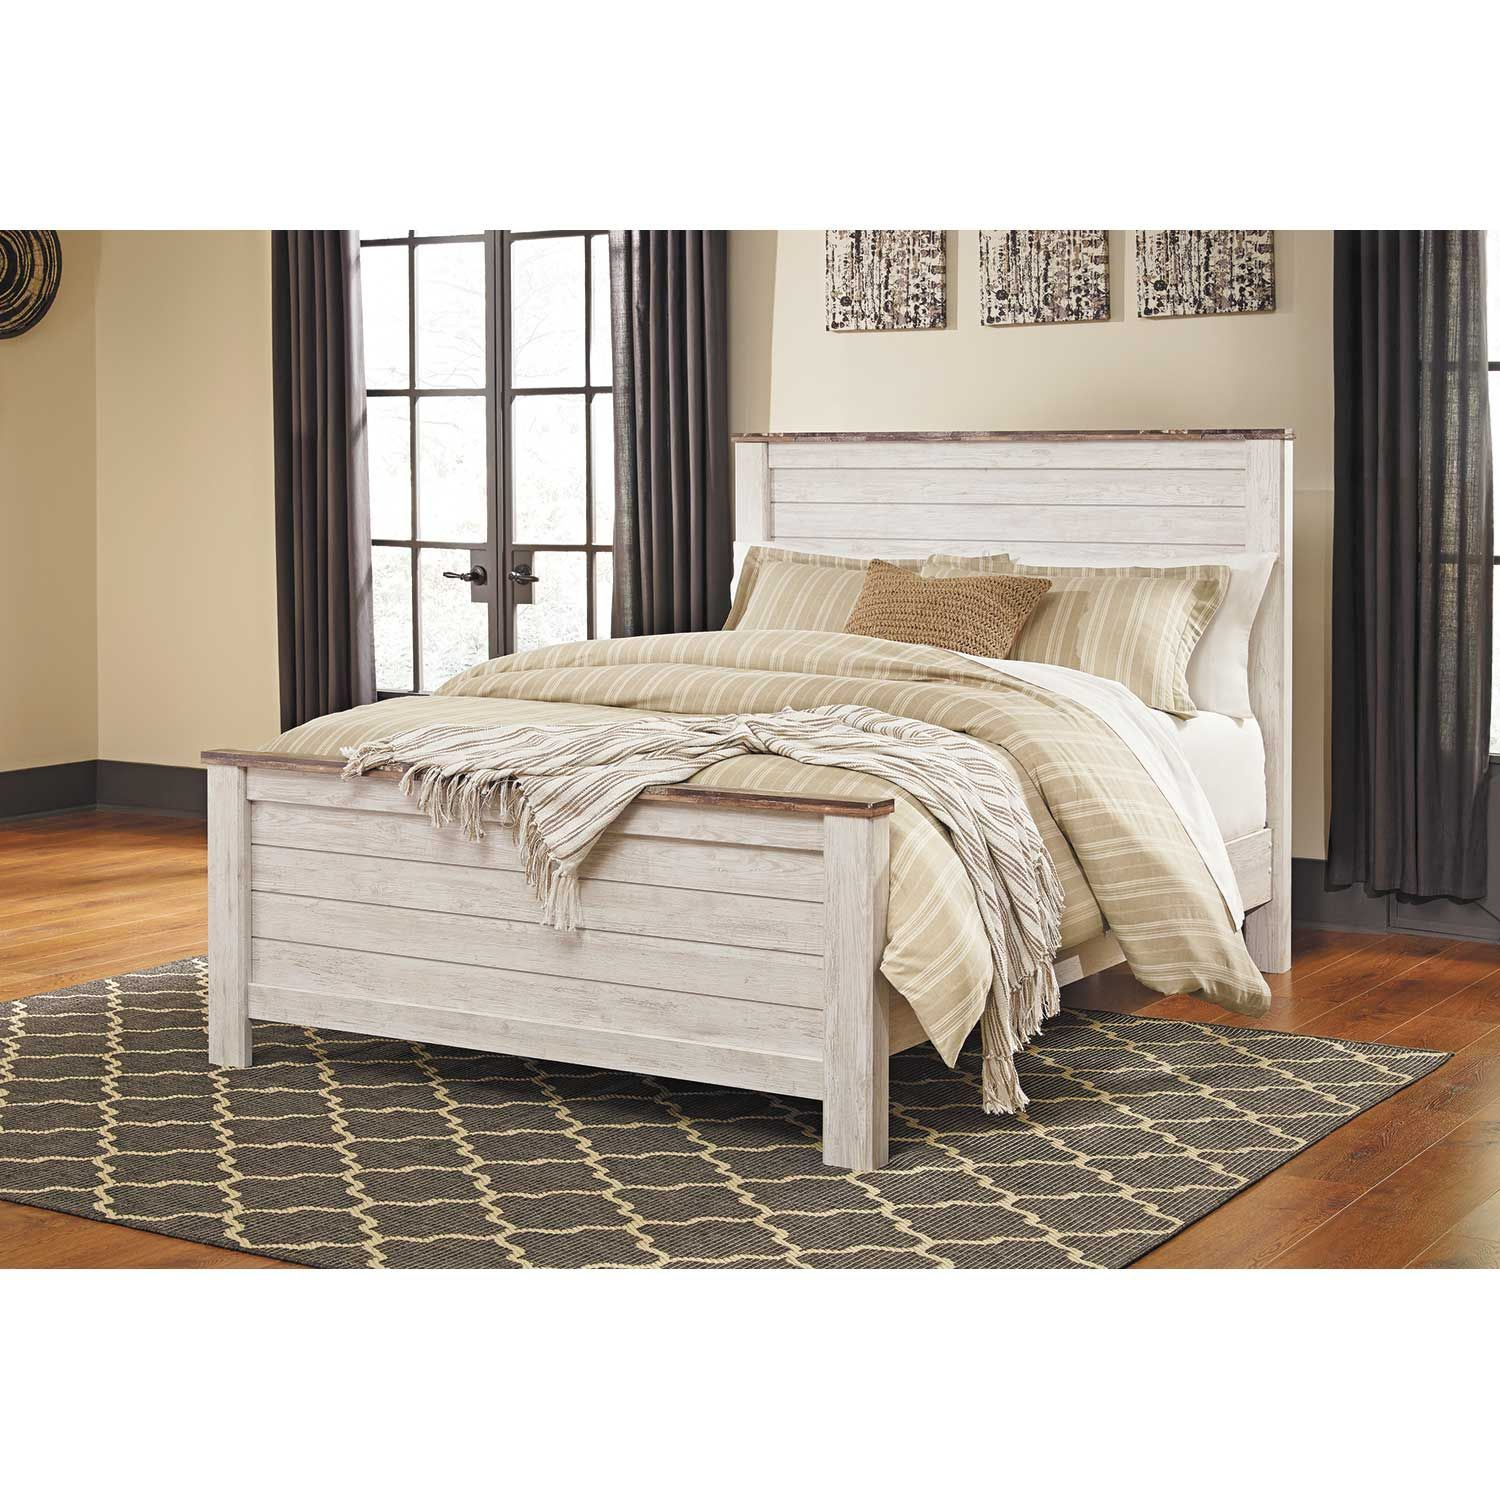 Ashley Outlet Furniture: Willowton Queen Panel Bed B267-QPNLBED